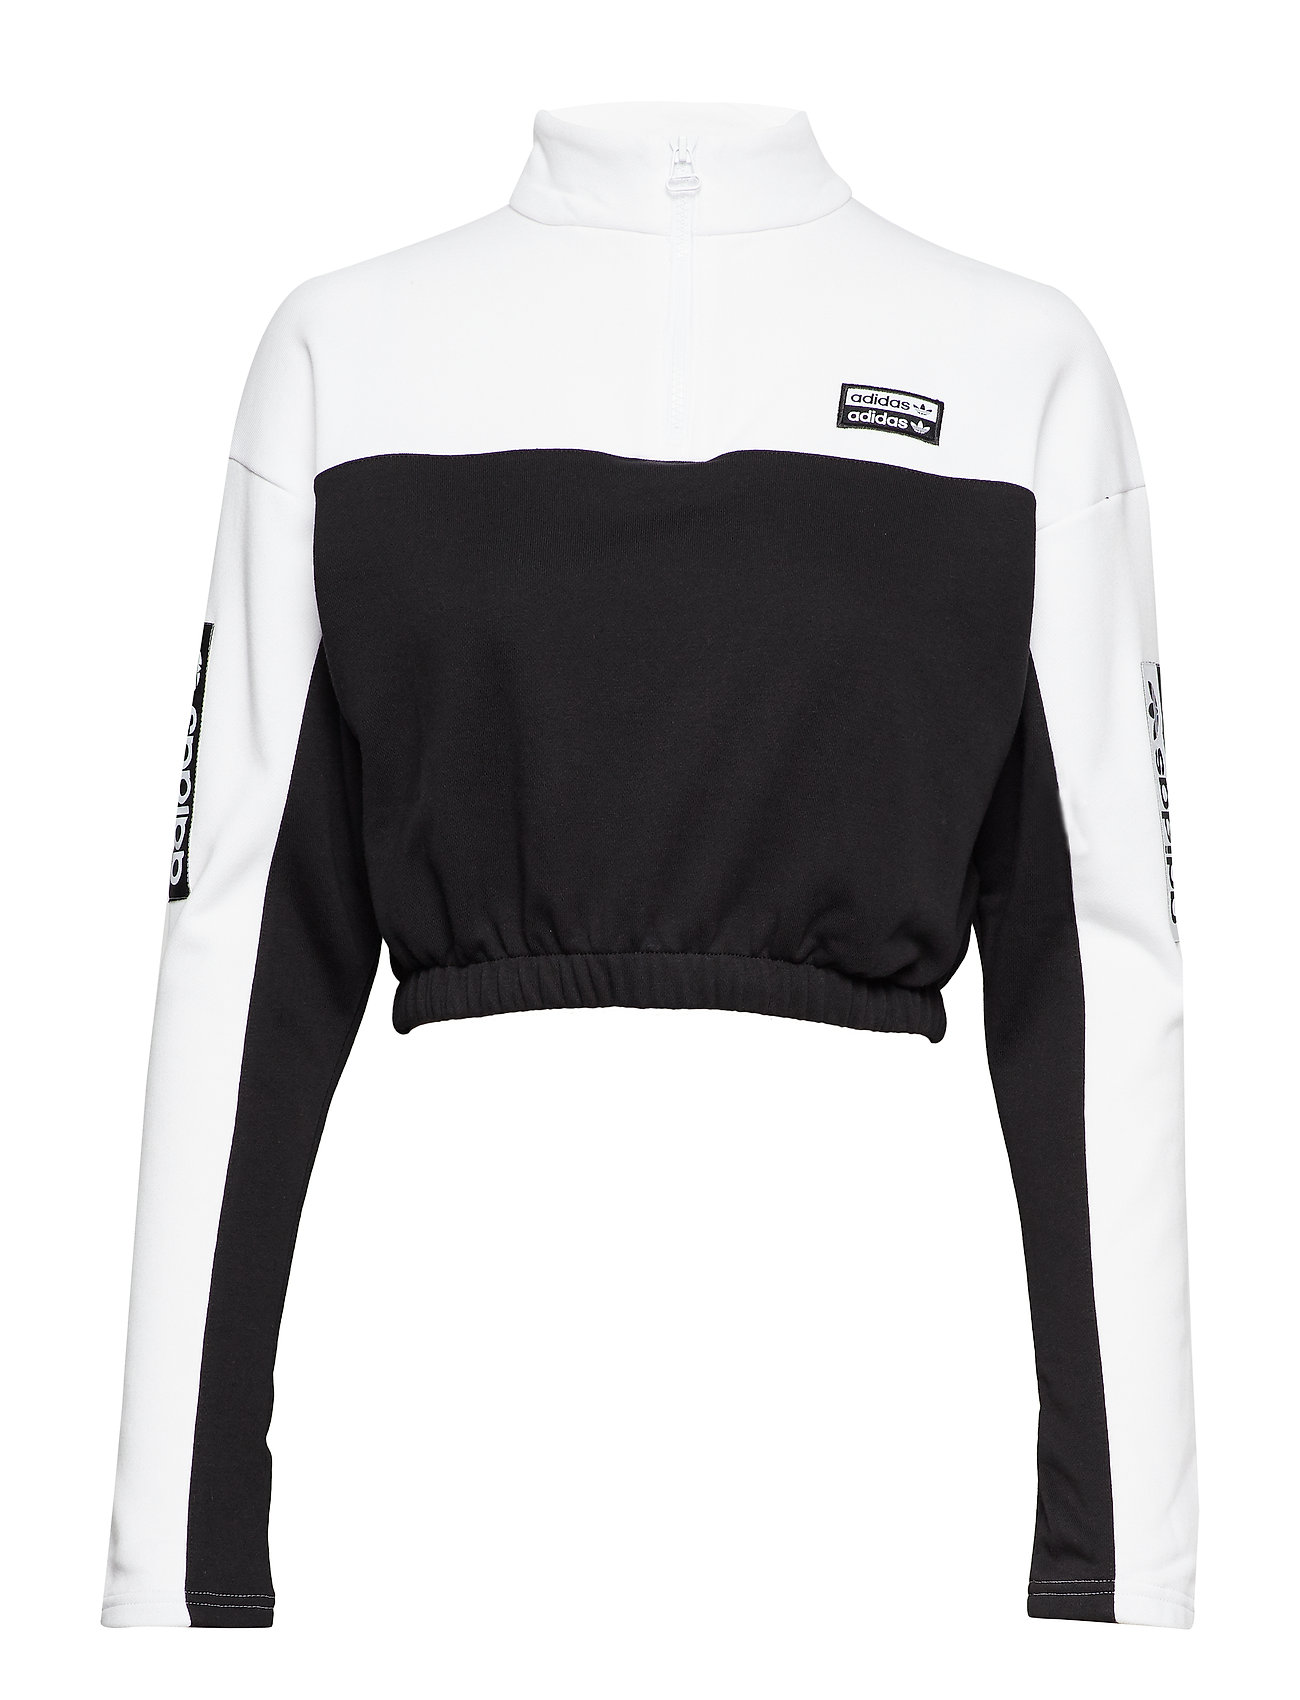 adidas Originals SWEATER - WHITE/BLACK